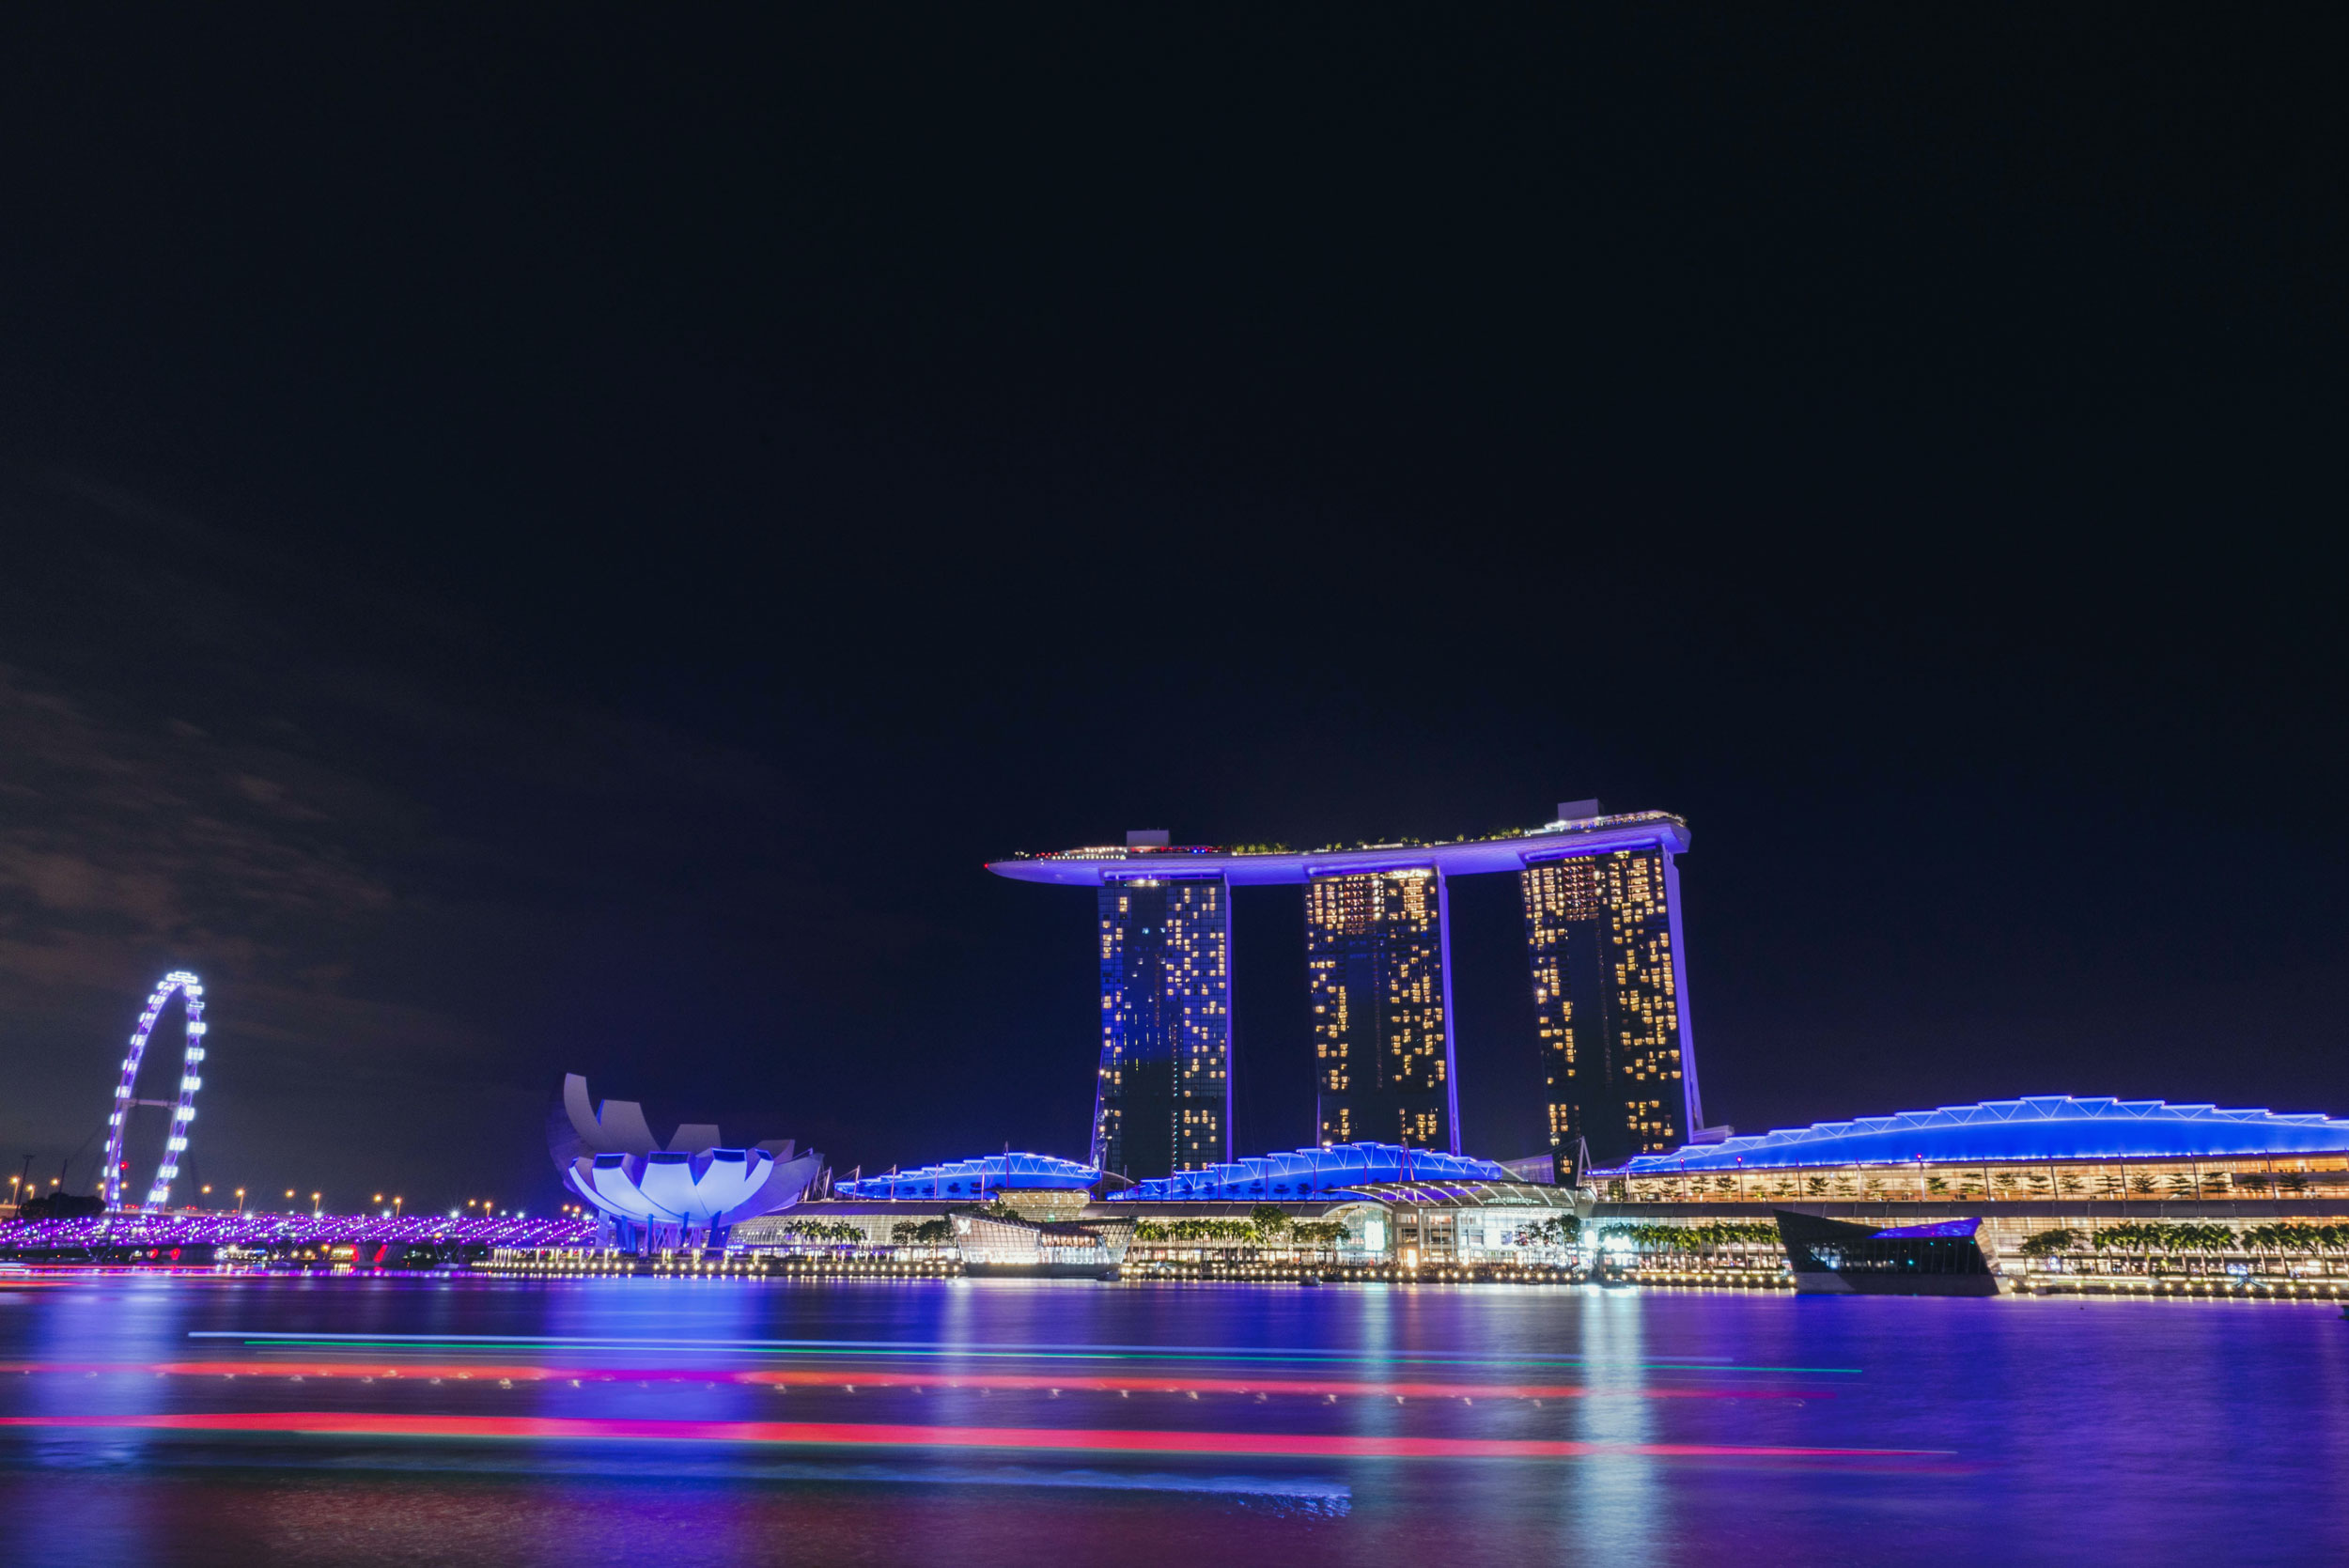 A boat streaks by the Marina Bay Sands in Singapore